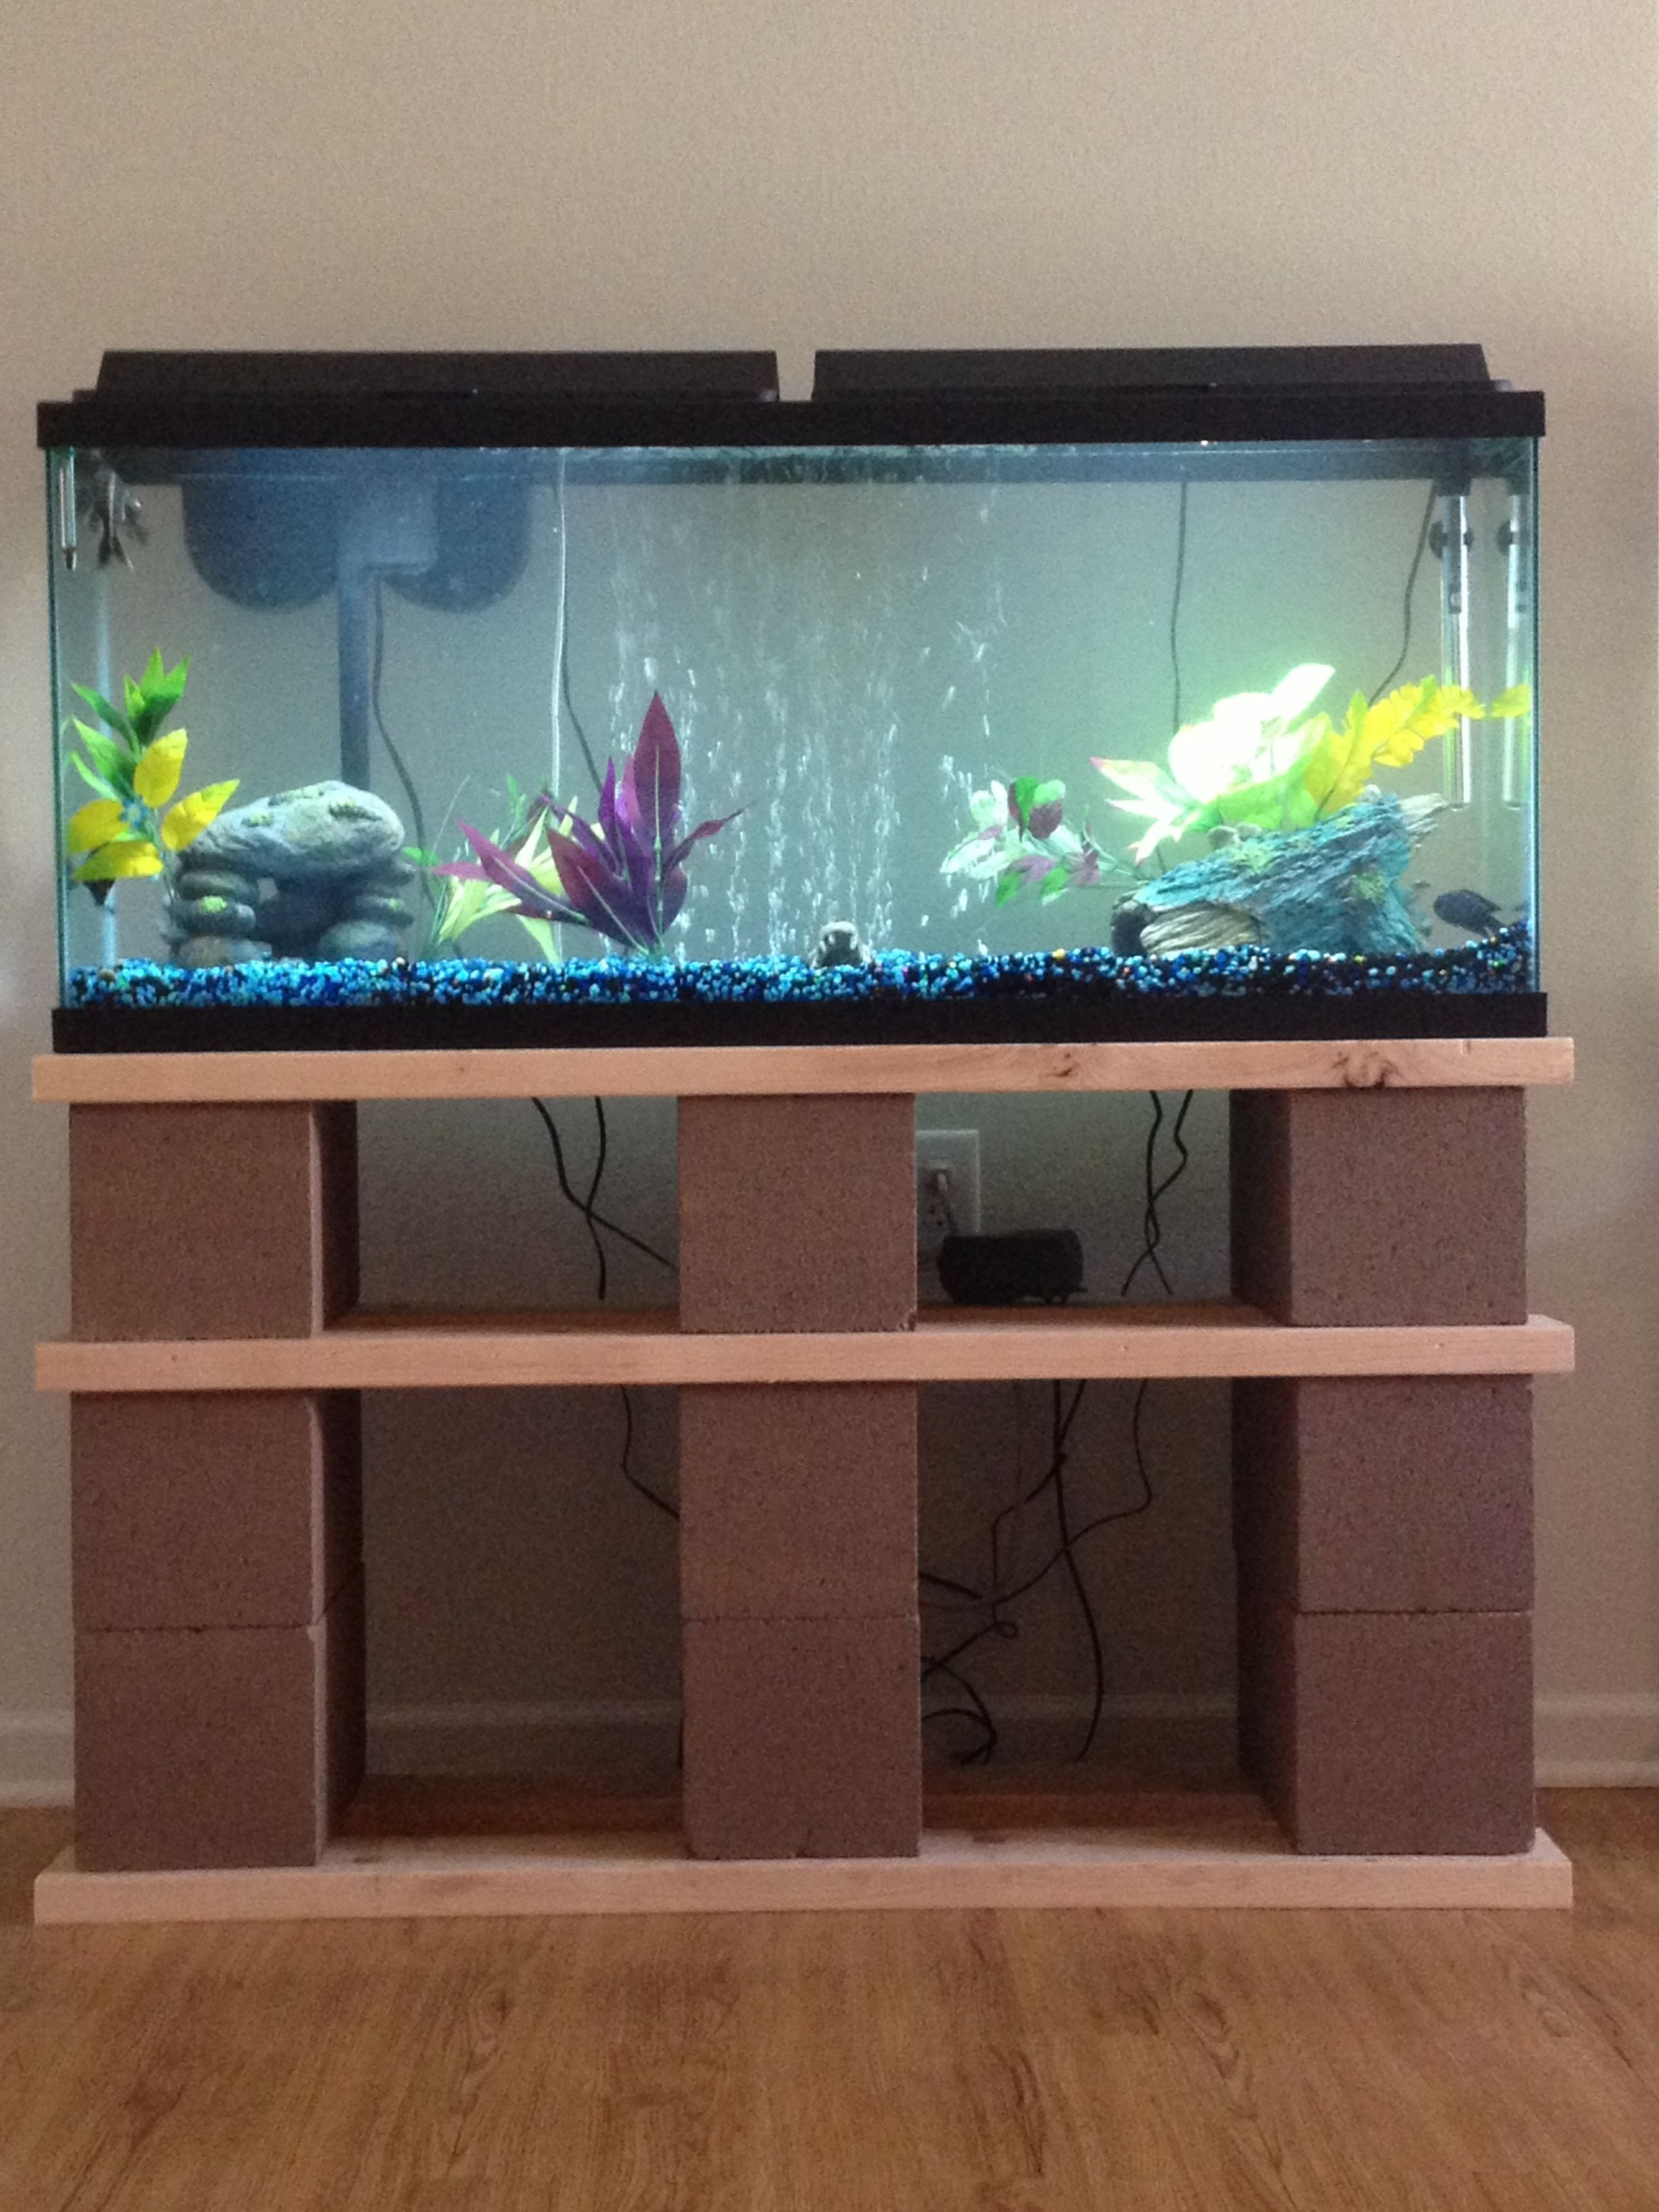 Pin By Keesha Carson On Craft Ideas Fish Tank Stand Aquarium Fish Tank Tank Stand